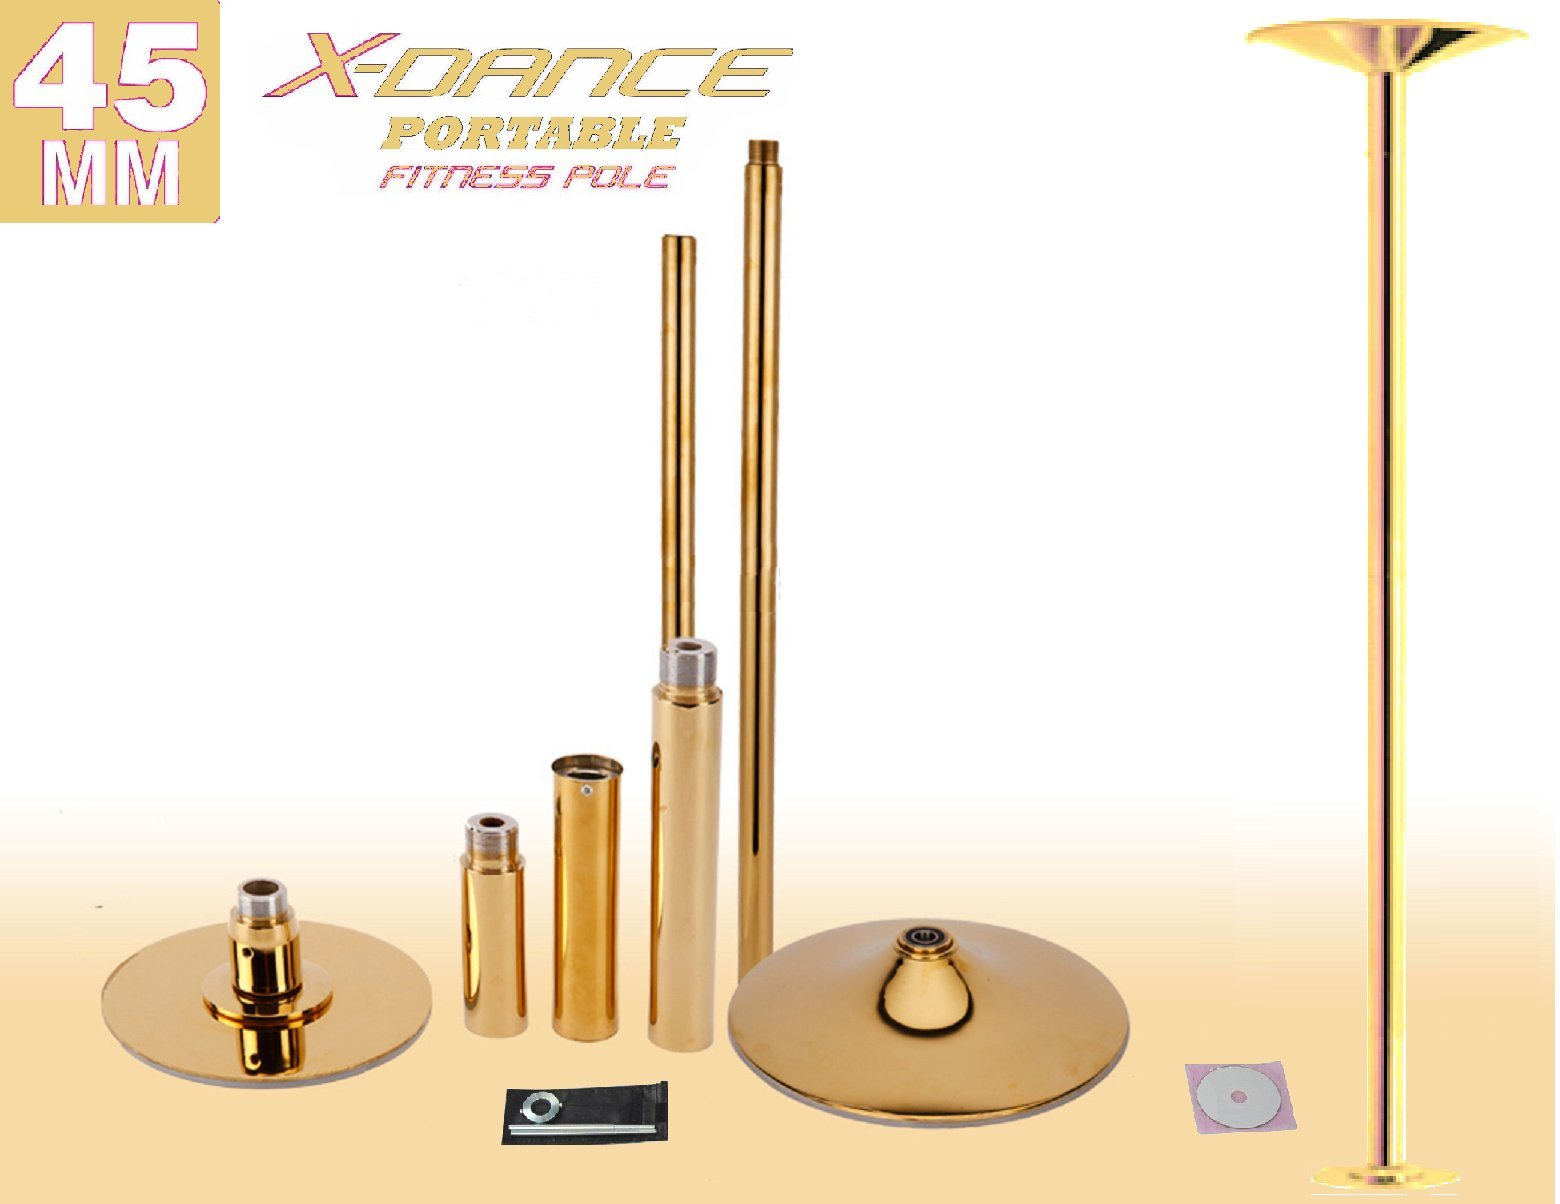 X-Dance (TM) 45 mm Professional Exotic Fitness Removable Pole Dance Fitness Stripper GOLD Colour Dancing Spinning Pole …